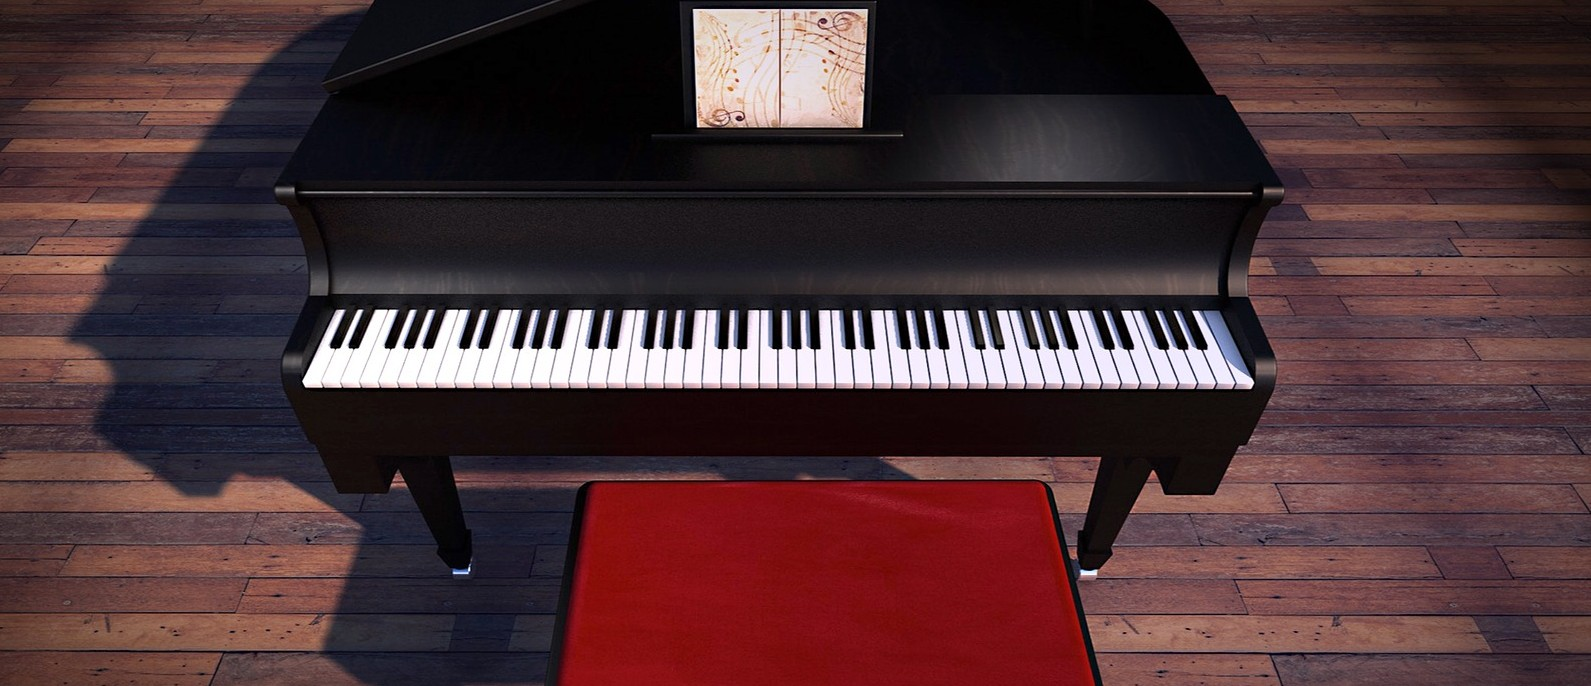 piano-2171349_1920 cropped